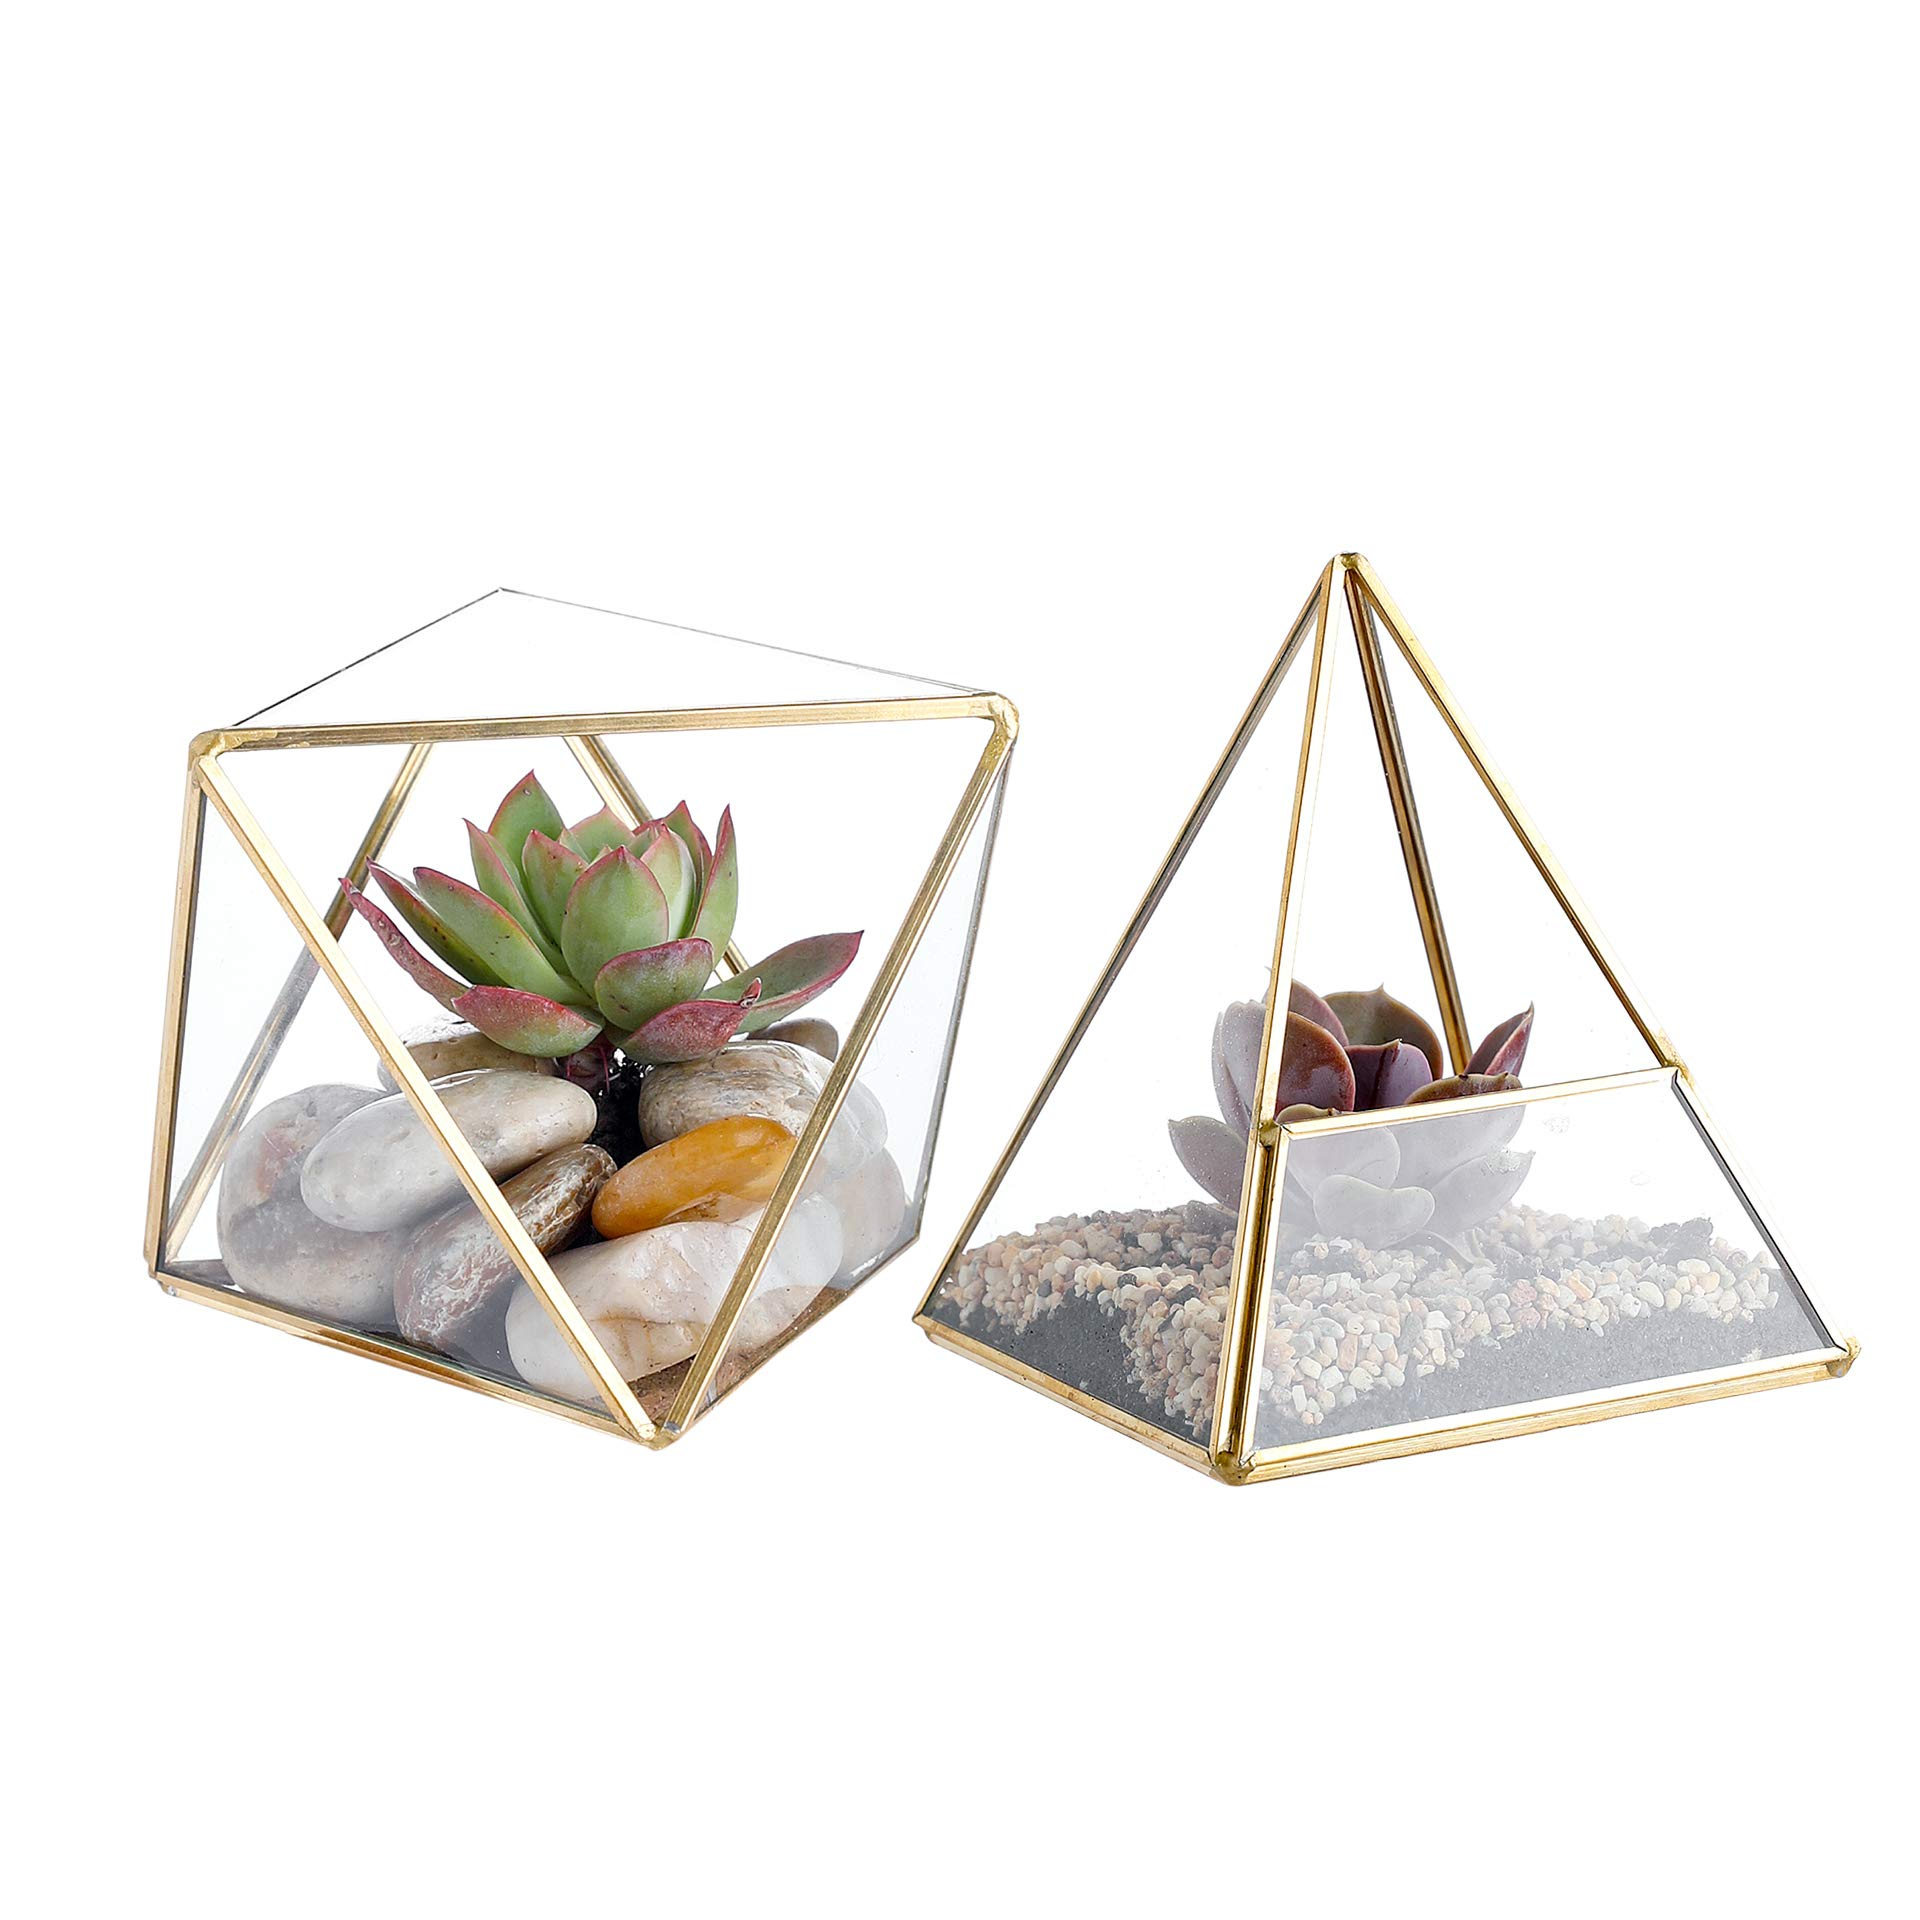 Whole Housewares Glass Geometric Terrarium Container 4.5X5.2 inch and 4.3X3.7 inch Glass Terrarium for Succulent & Air Plant (Gold, 2pcs) by Whole Housewares